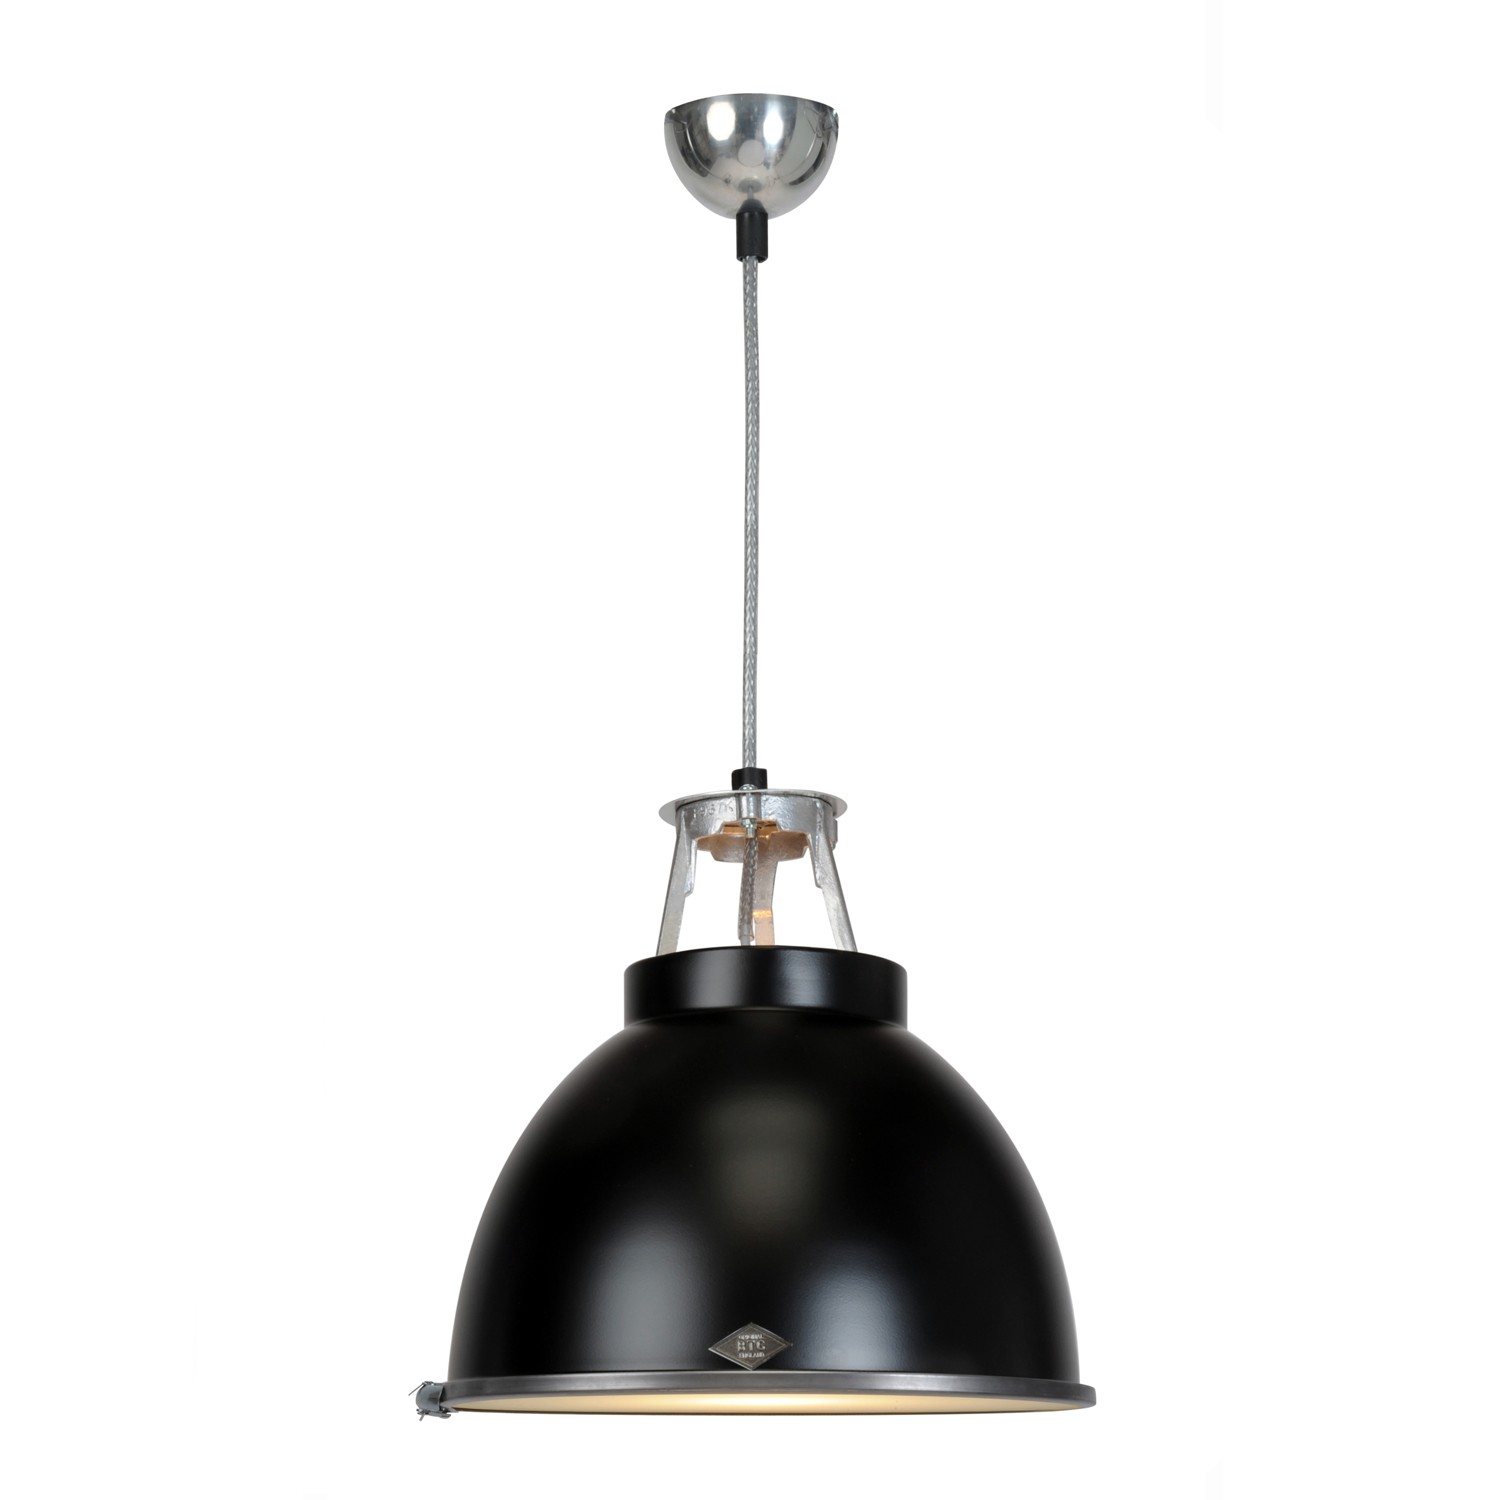 Titan Size 1 Pendant Light Black with Etched Glass